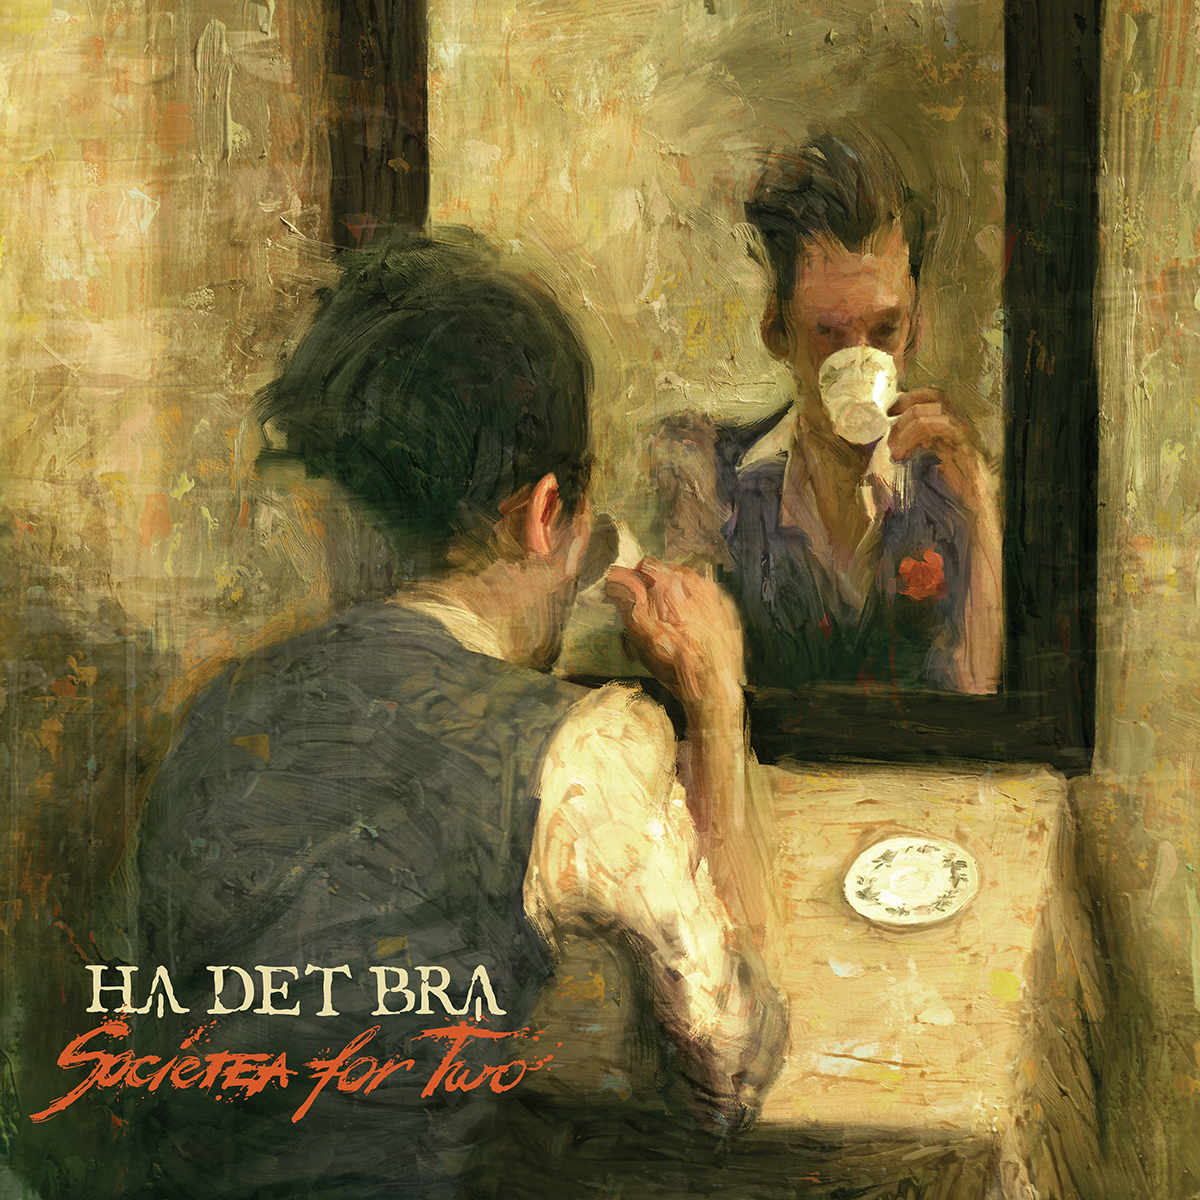 HA DET BRA - Societea for Two